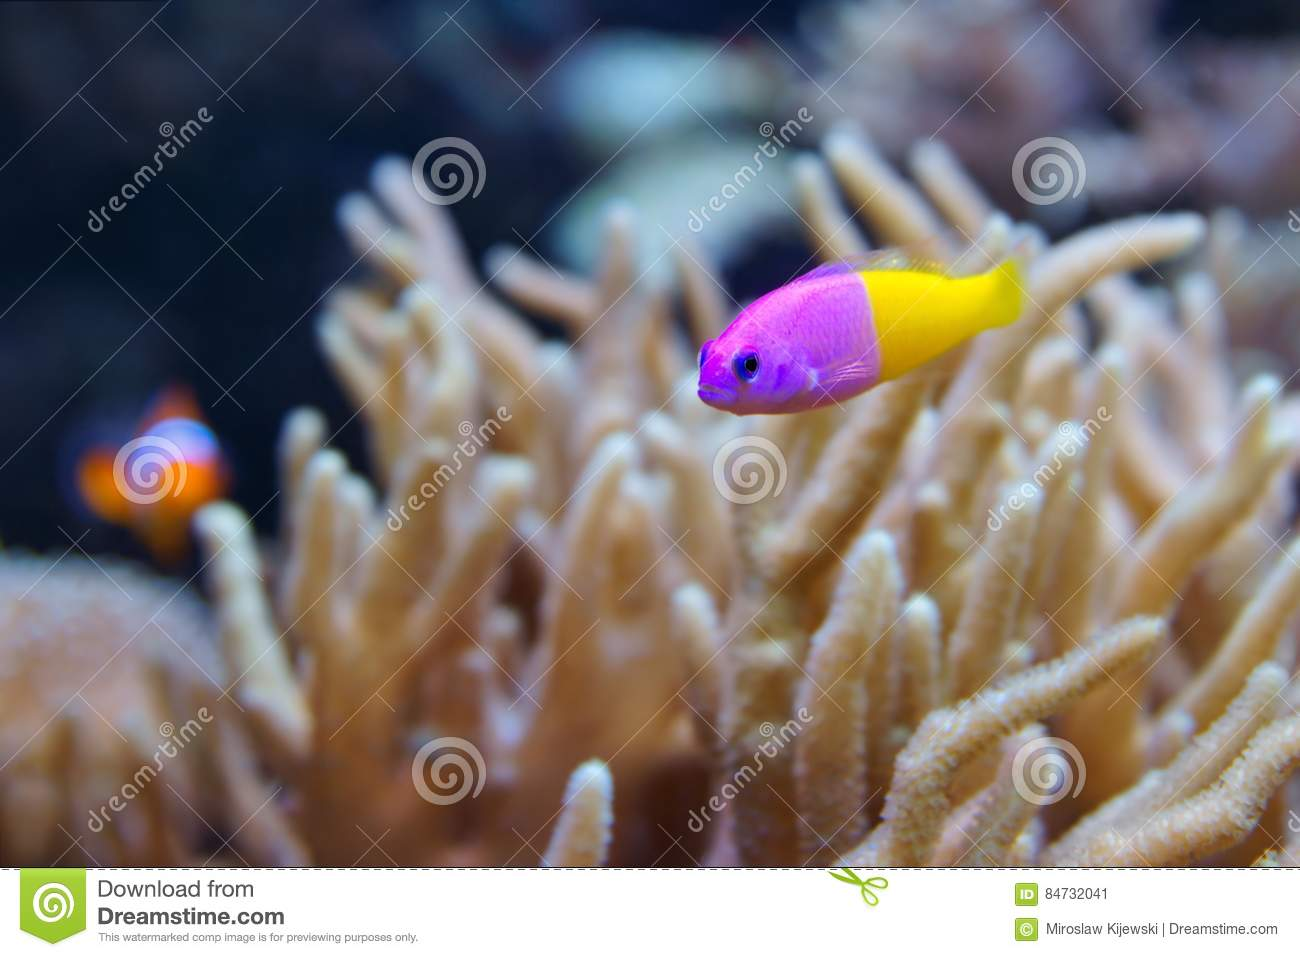 Bicolor Dottyback Pictichromis paccagnella, also called the Royal Dottyback or False Gramma